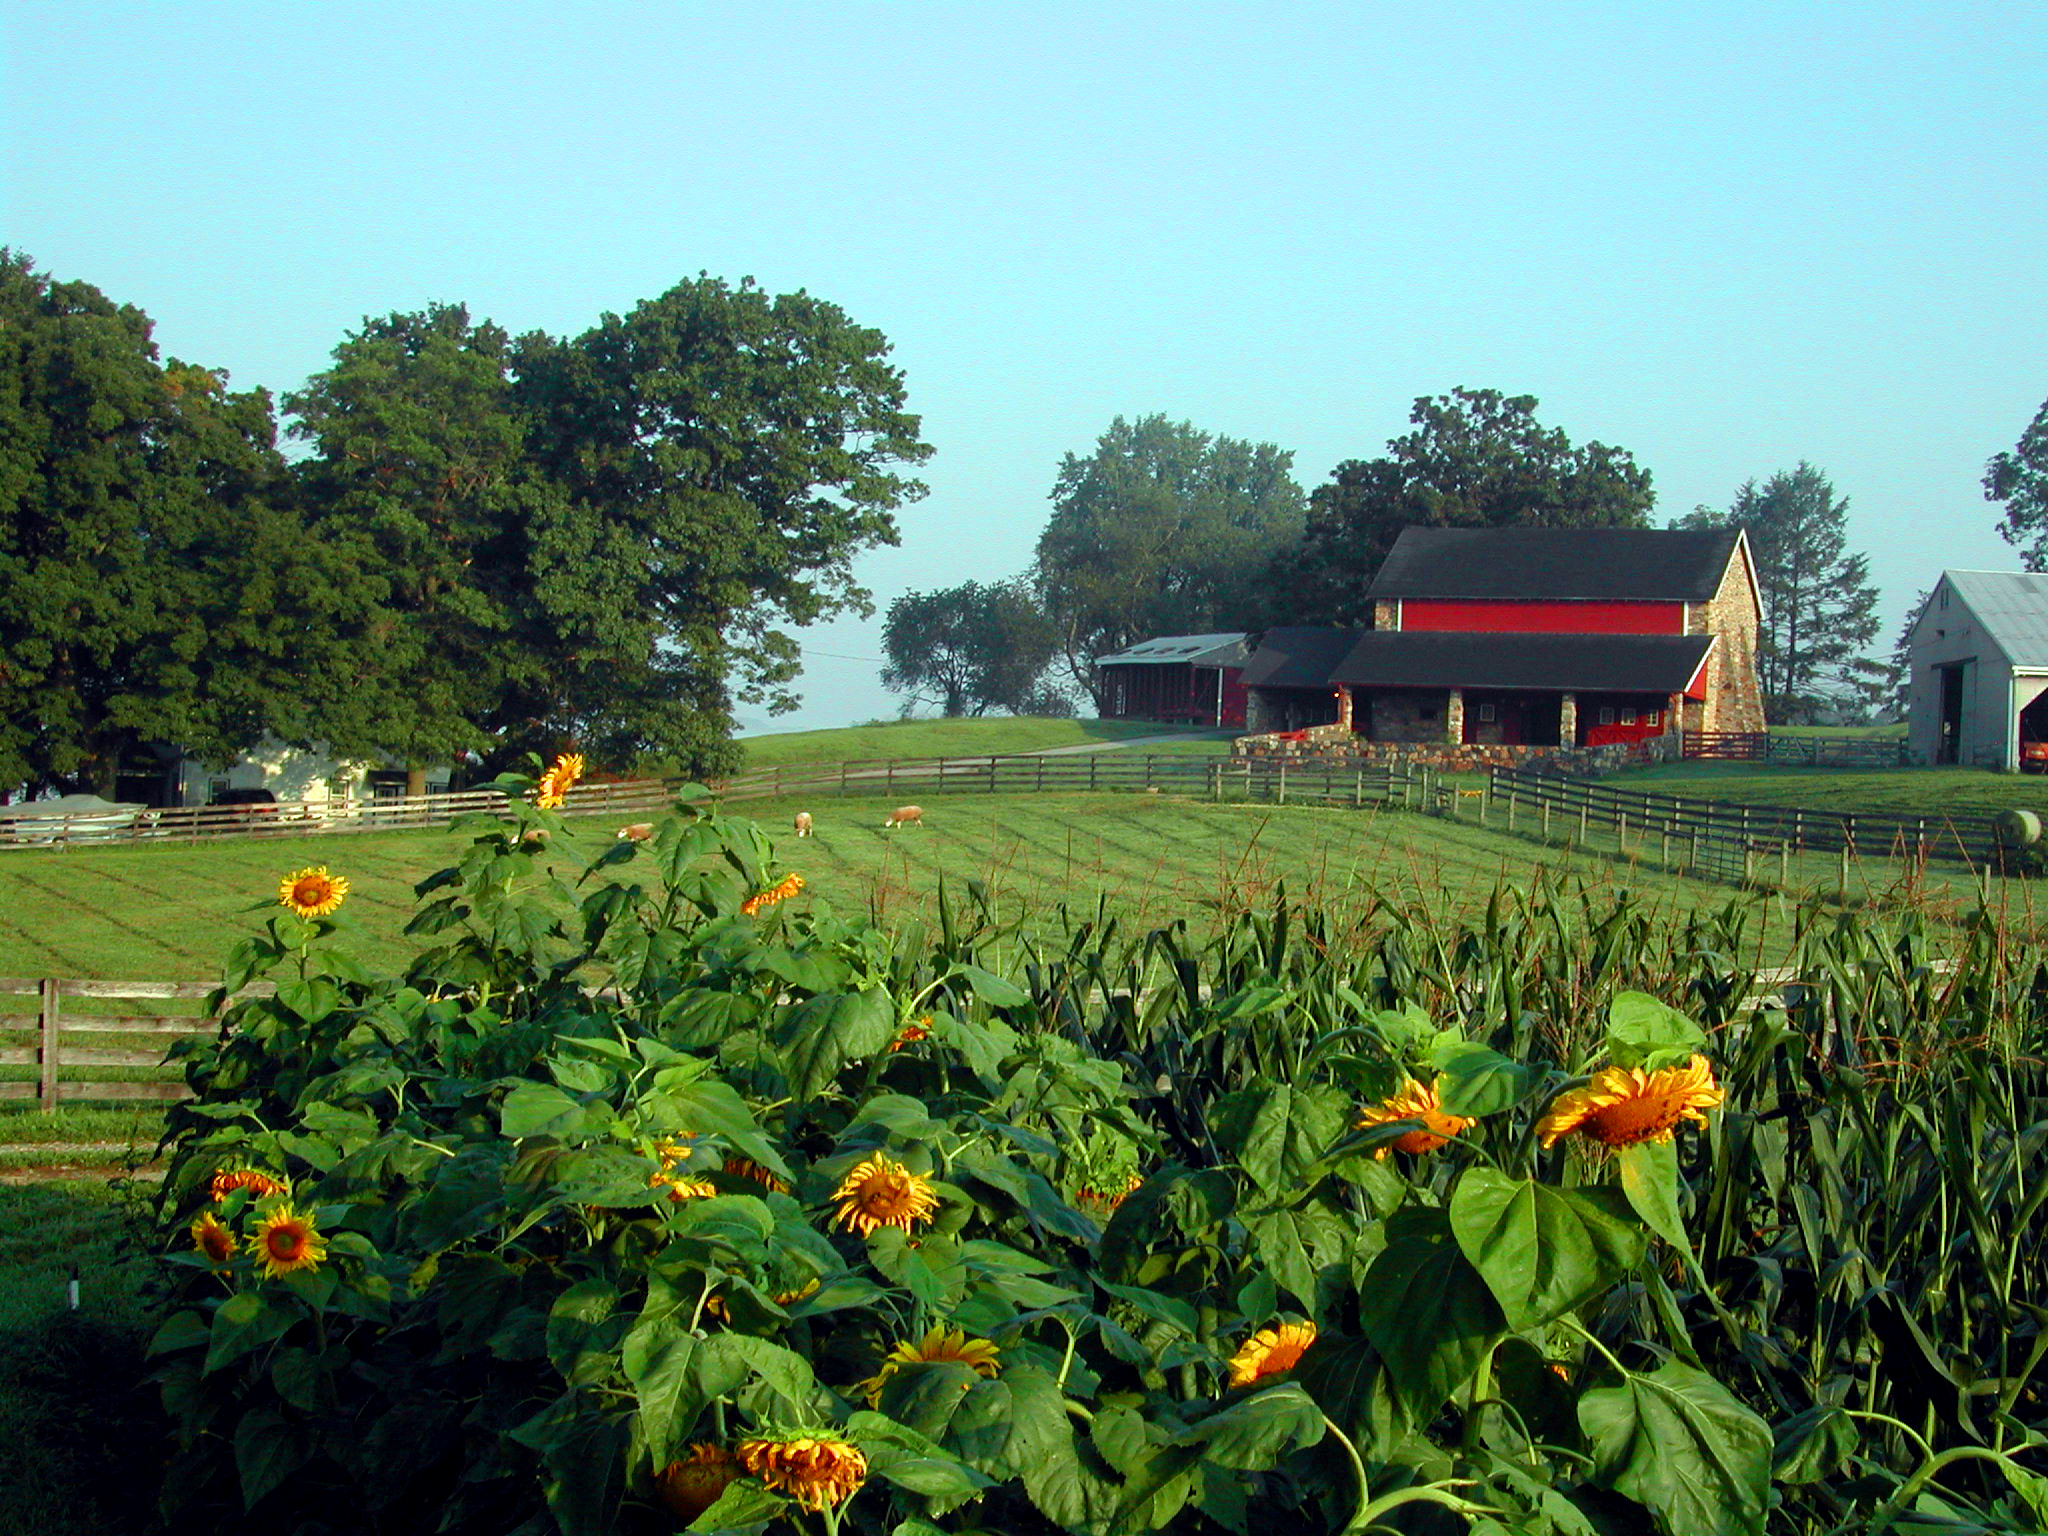 Coverdale Farms on the Red Clay Valley Scenic Byway